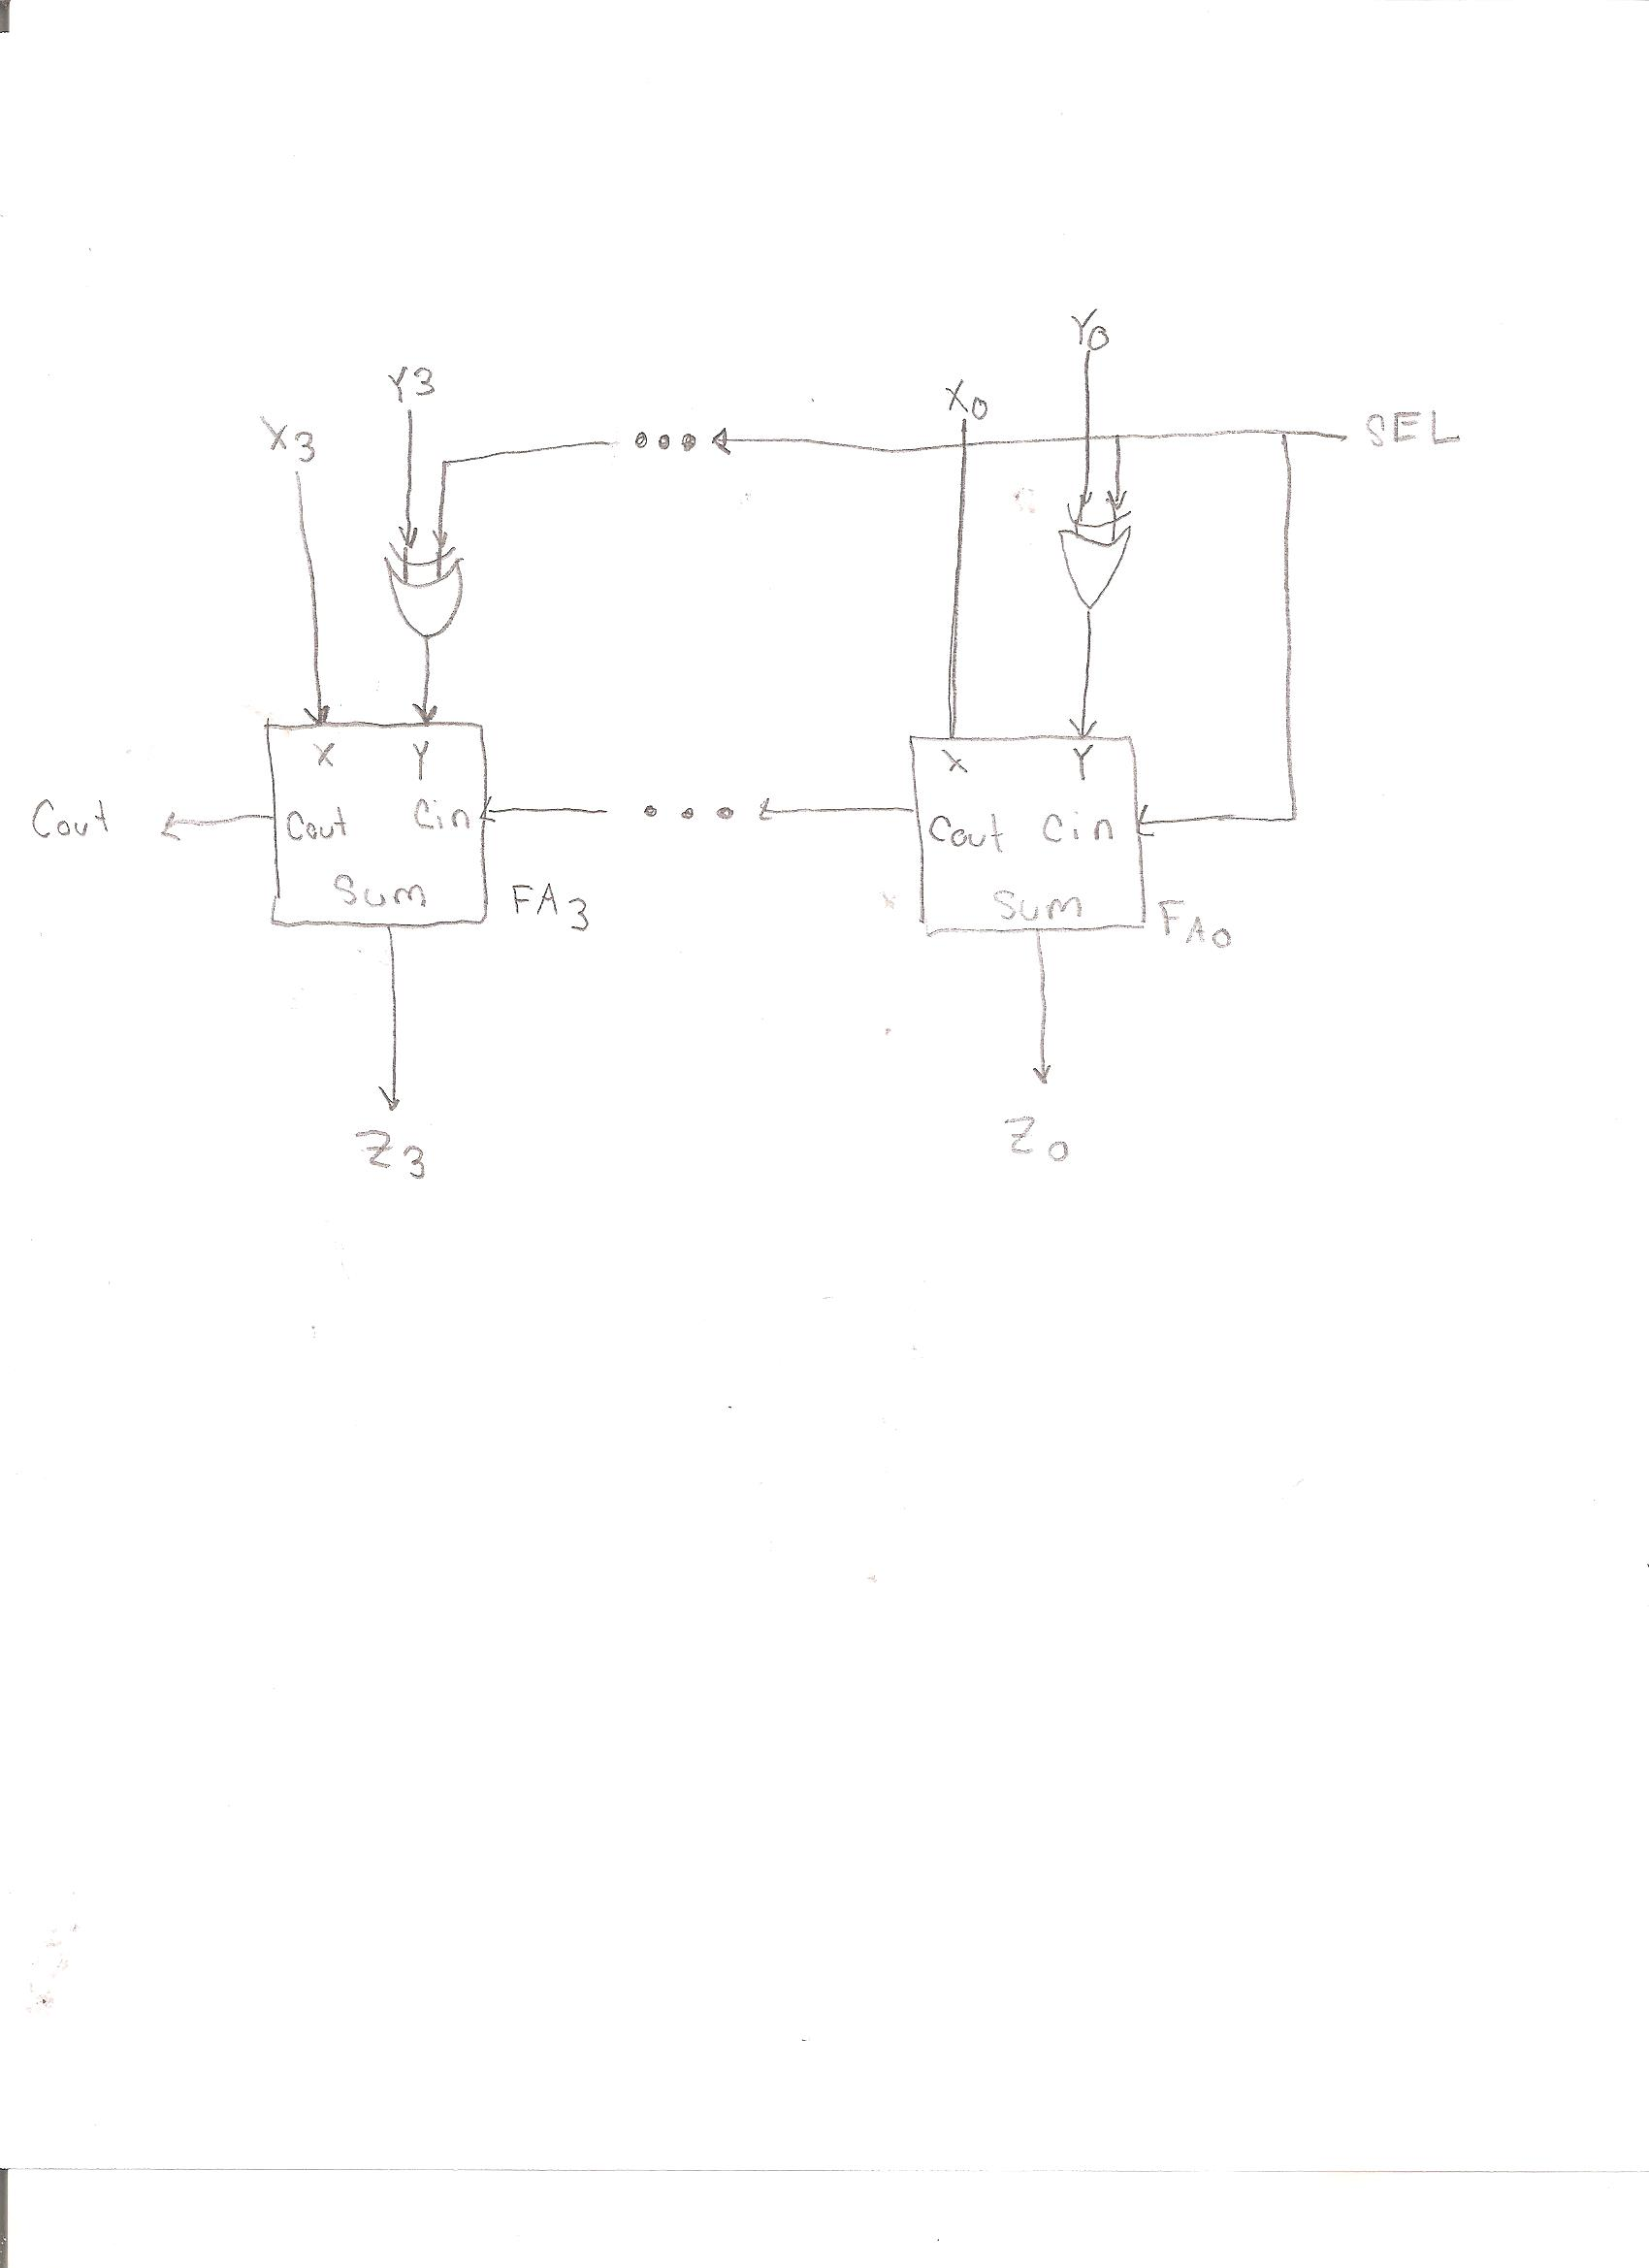 The circuit diagram attached implements a 4-bit a